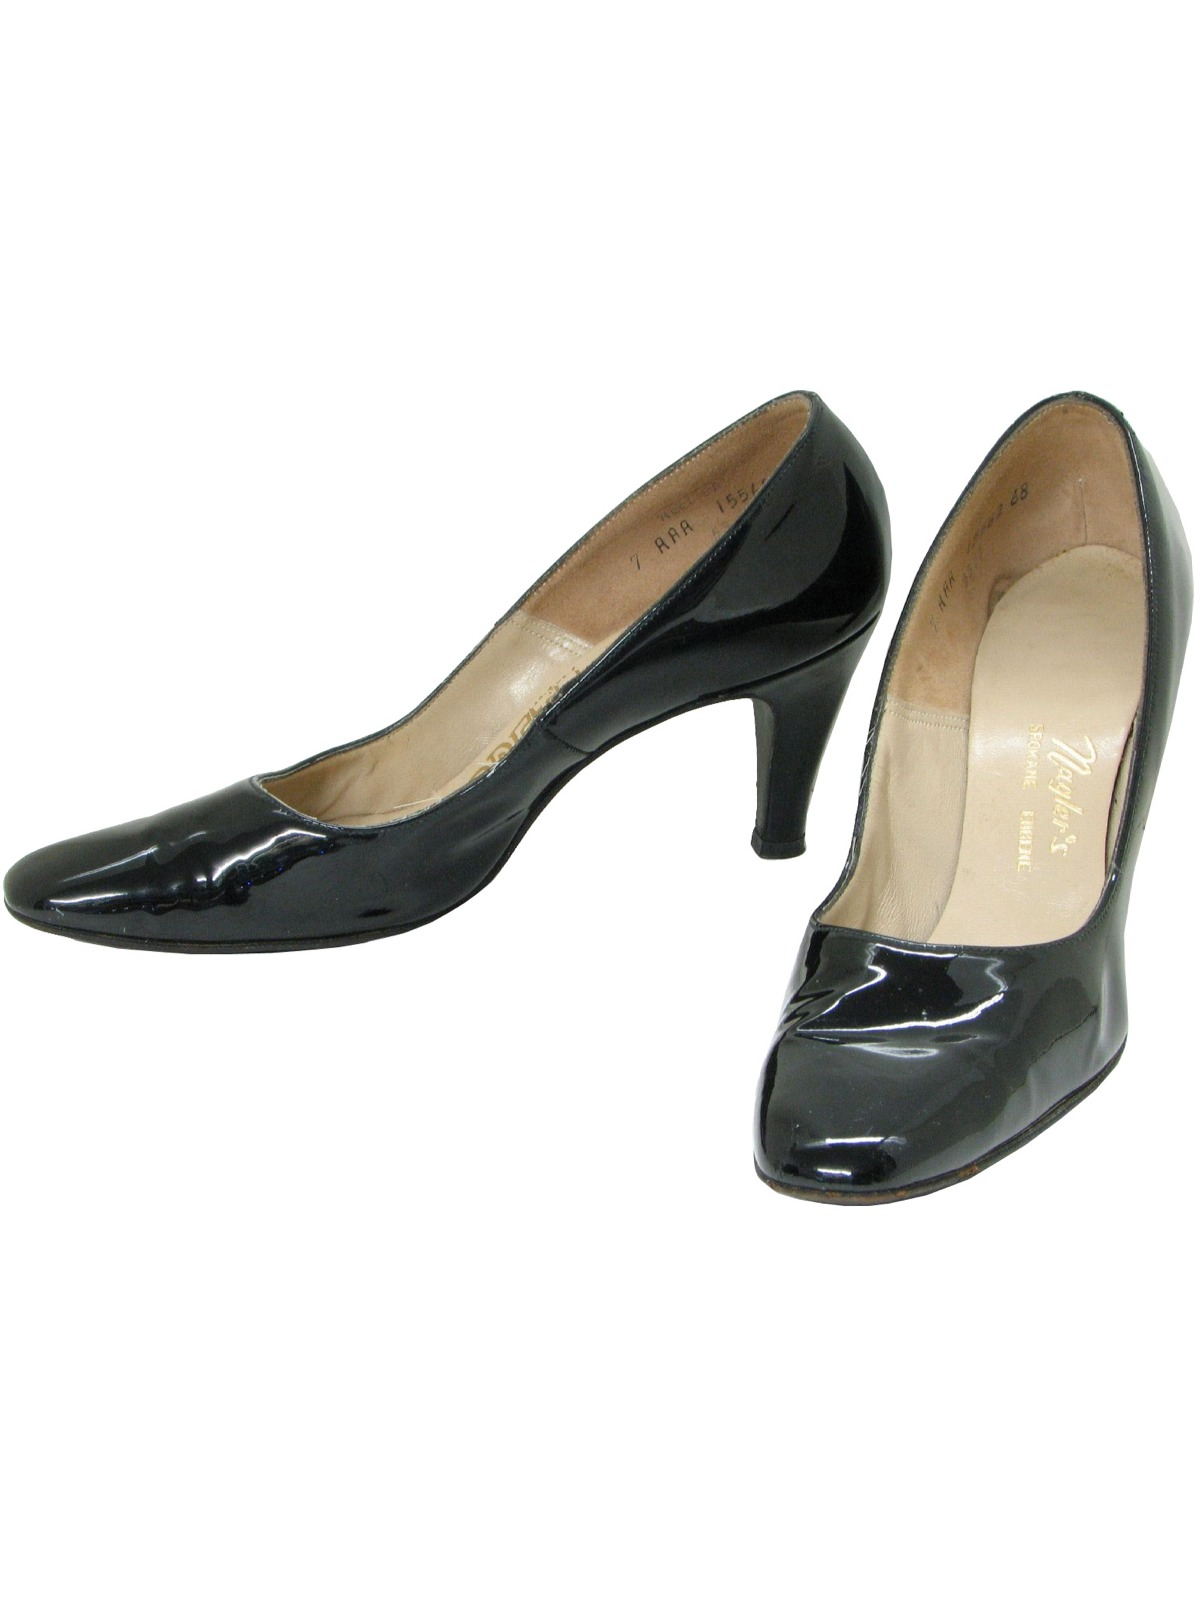 sixties geppetto shoes late 60s geppetto womens black